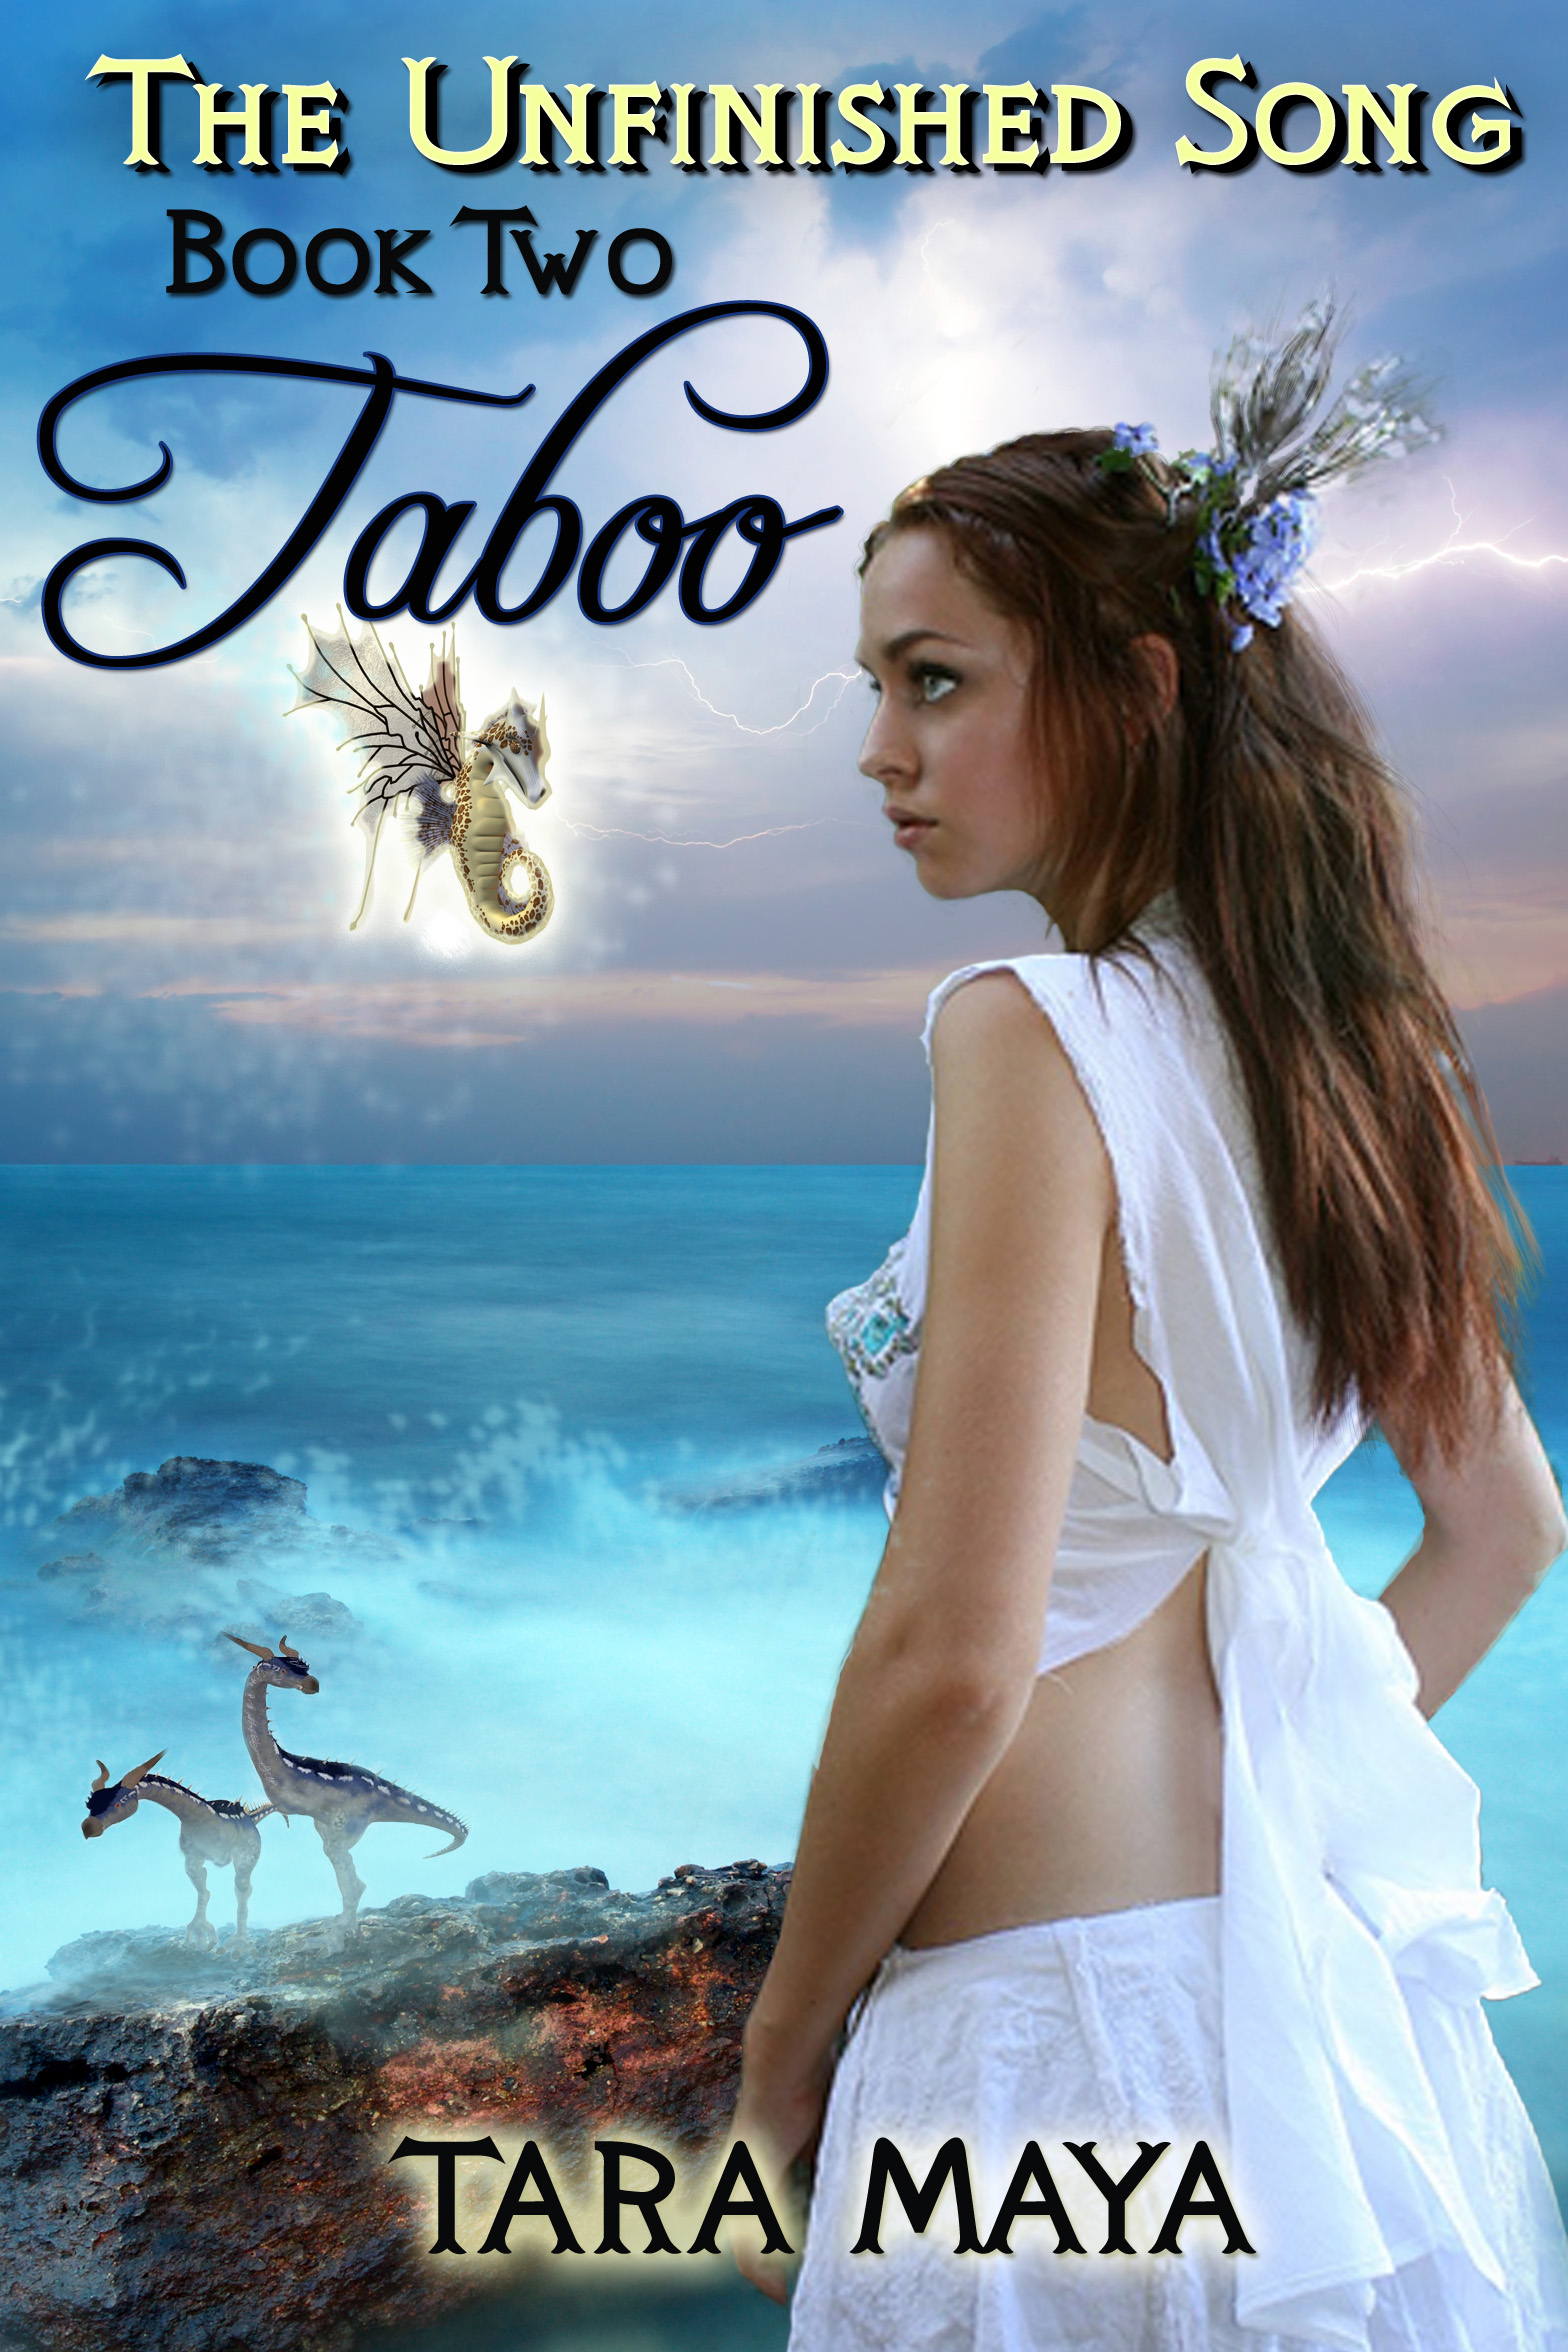 American Taboo Movie smashwords – the unfinished song: taboo (book 2) - a book